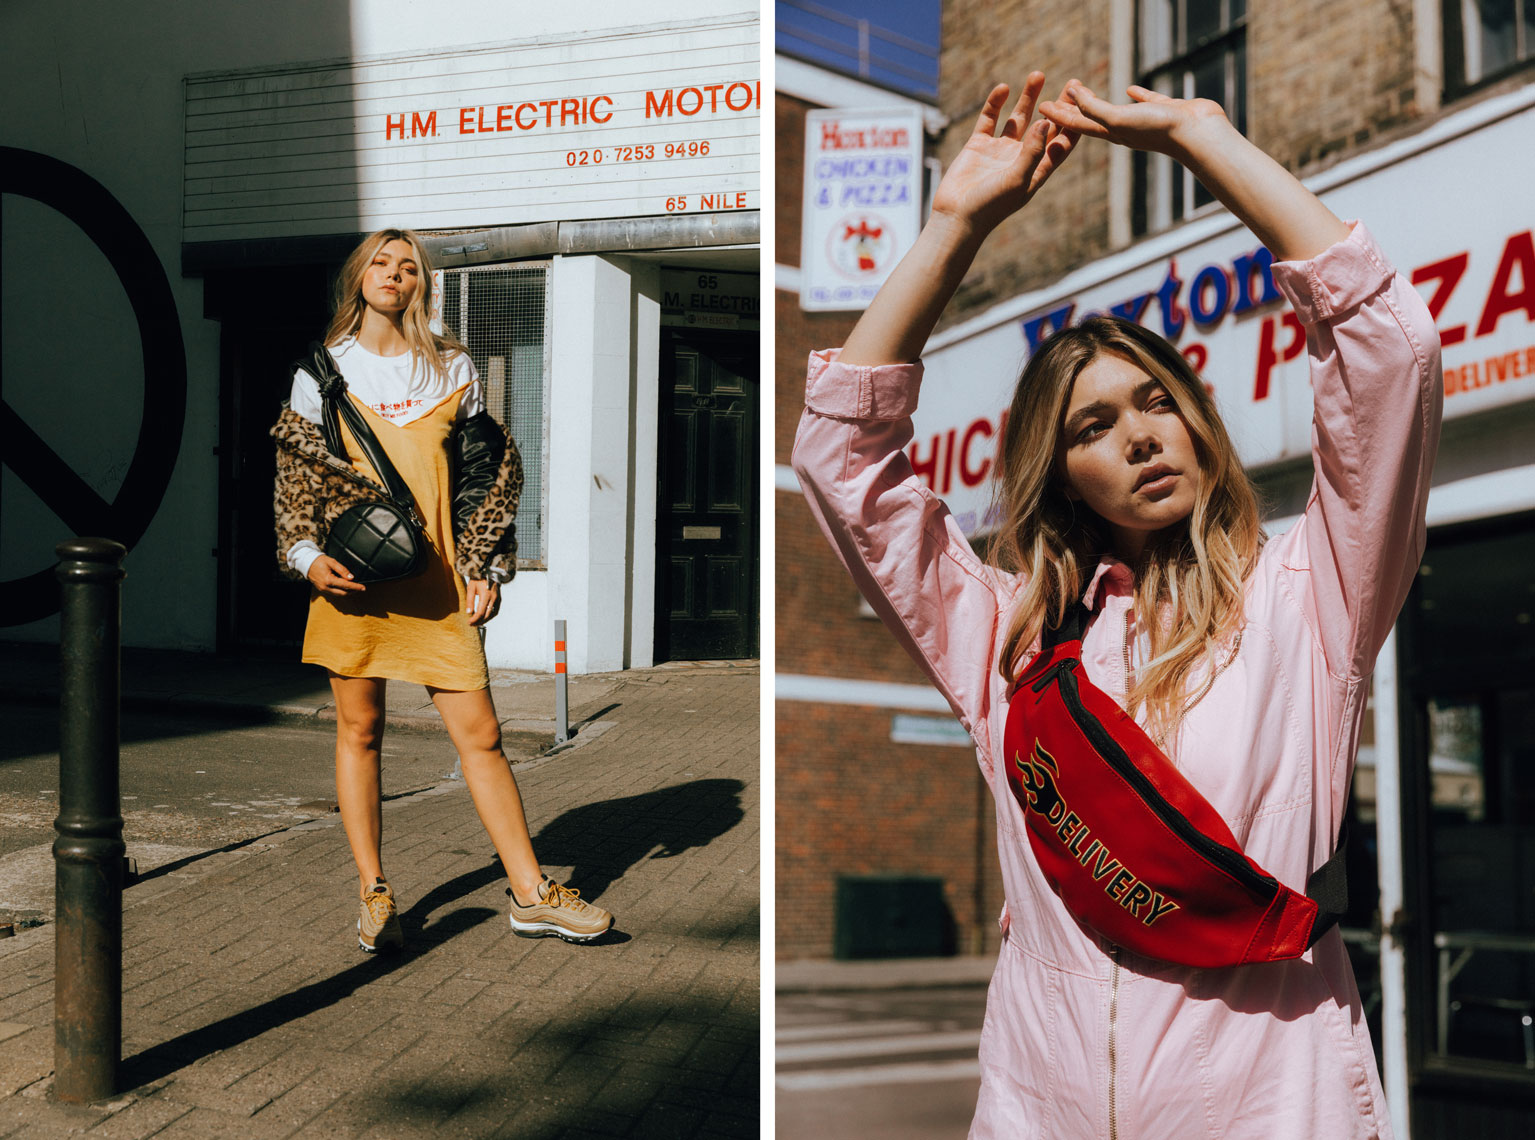 issie-gibbons-fashion-stylist-skinnydip-london-campaign-buy-me-food-boiler-suit